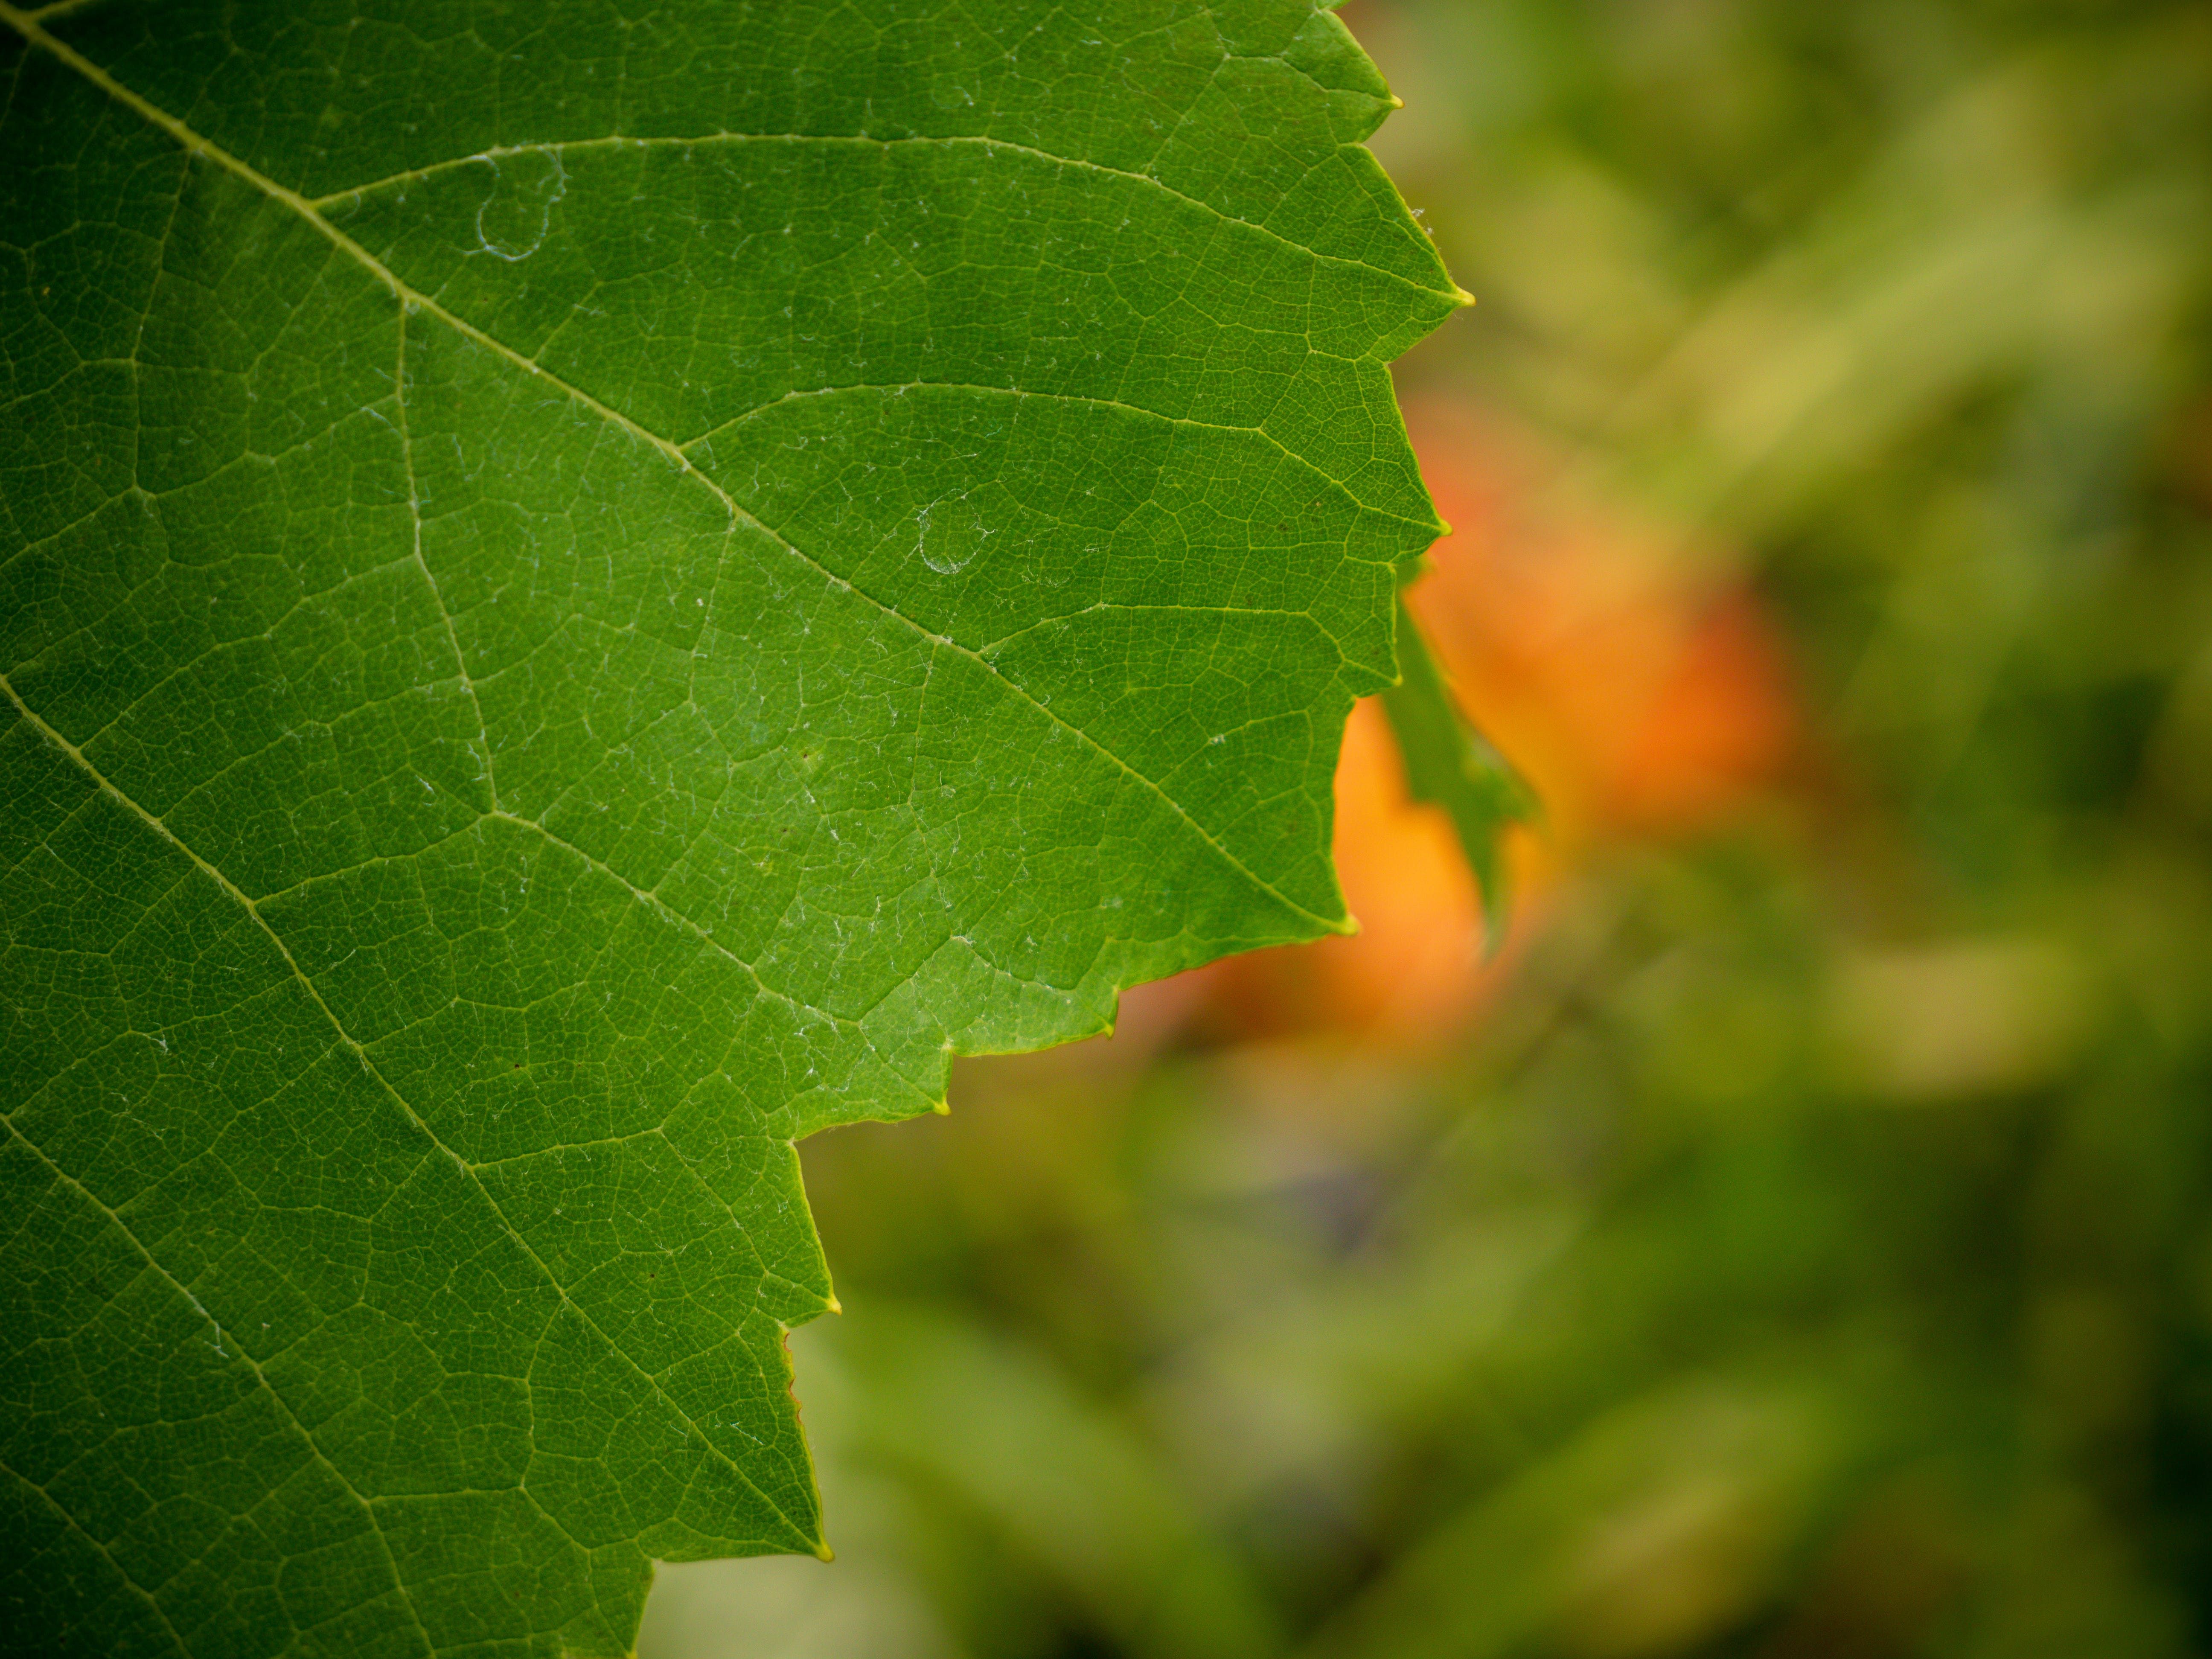 Free stock photo of detail, green, leaf, nature